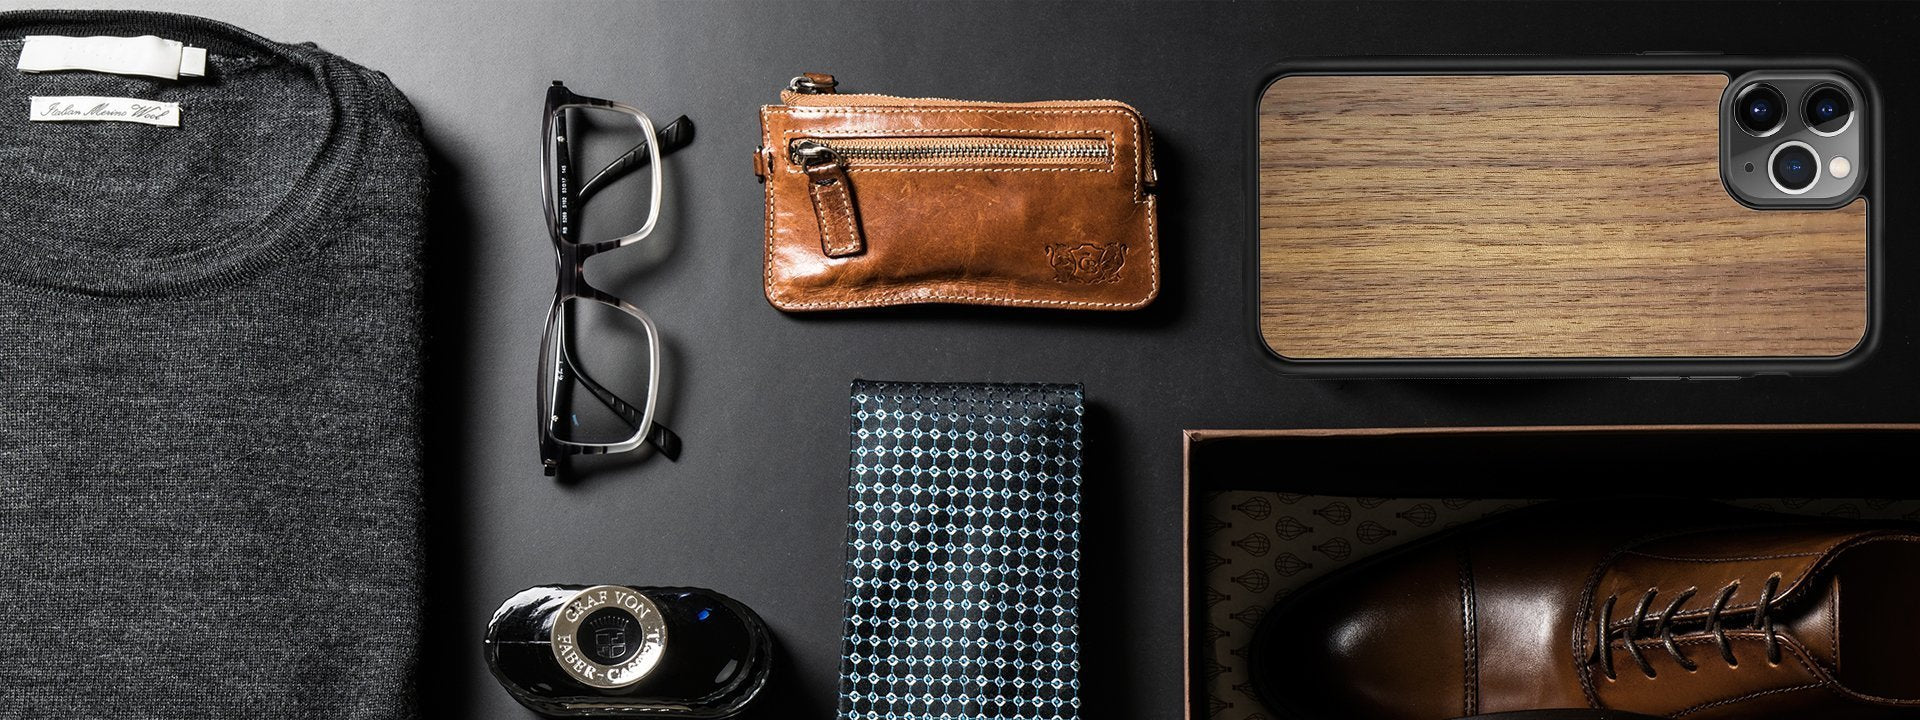 iphone samsung carbon case